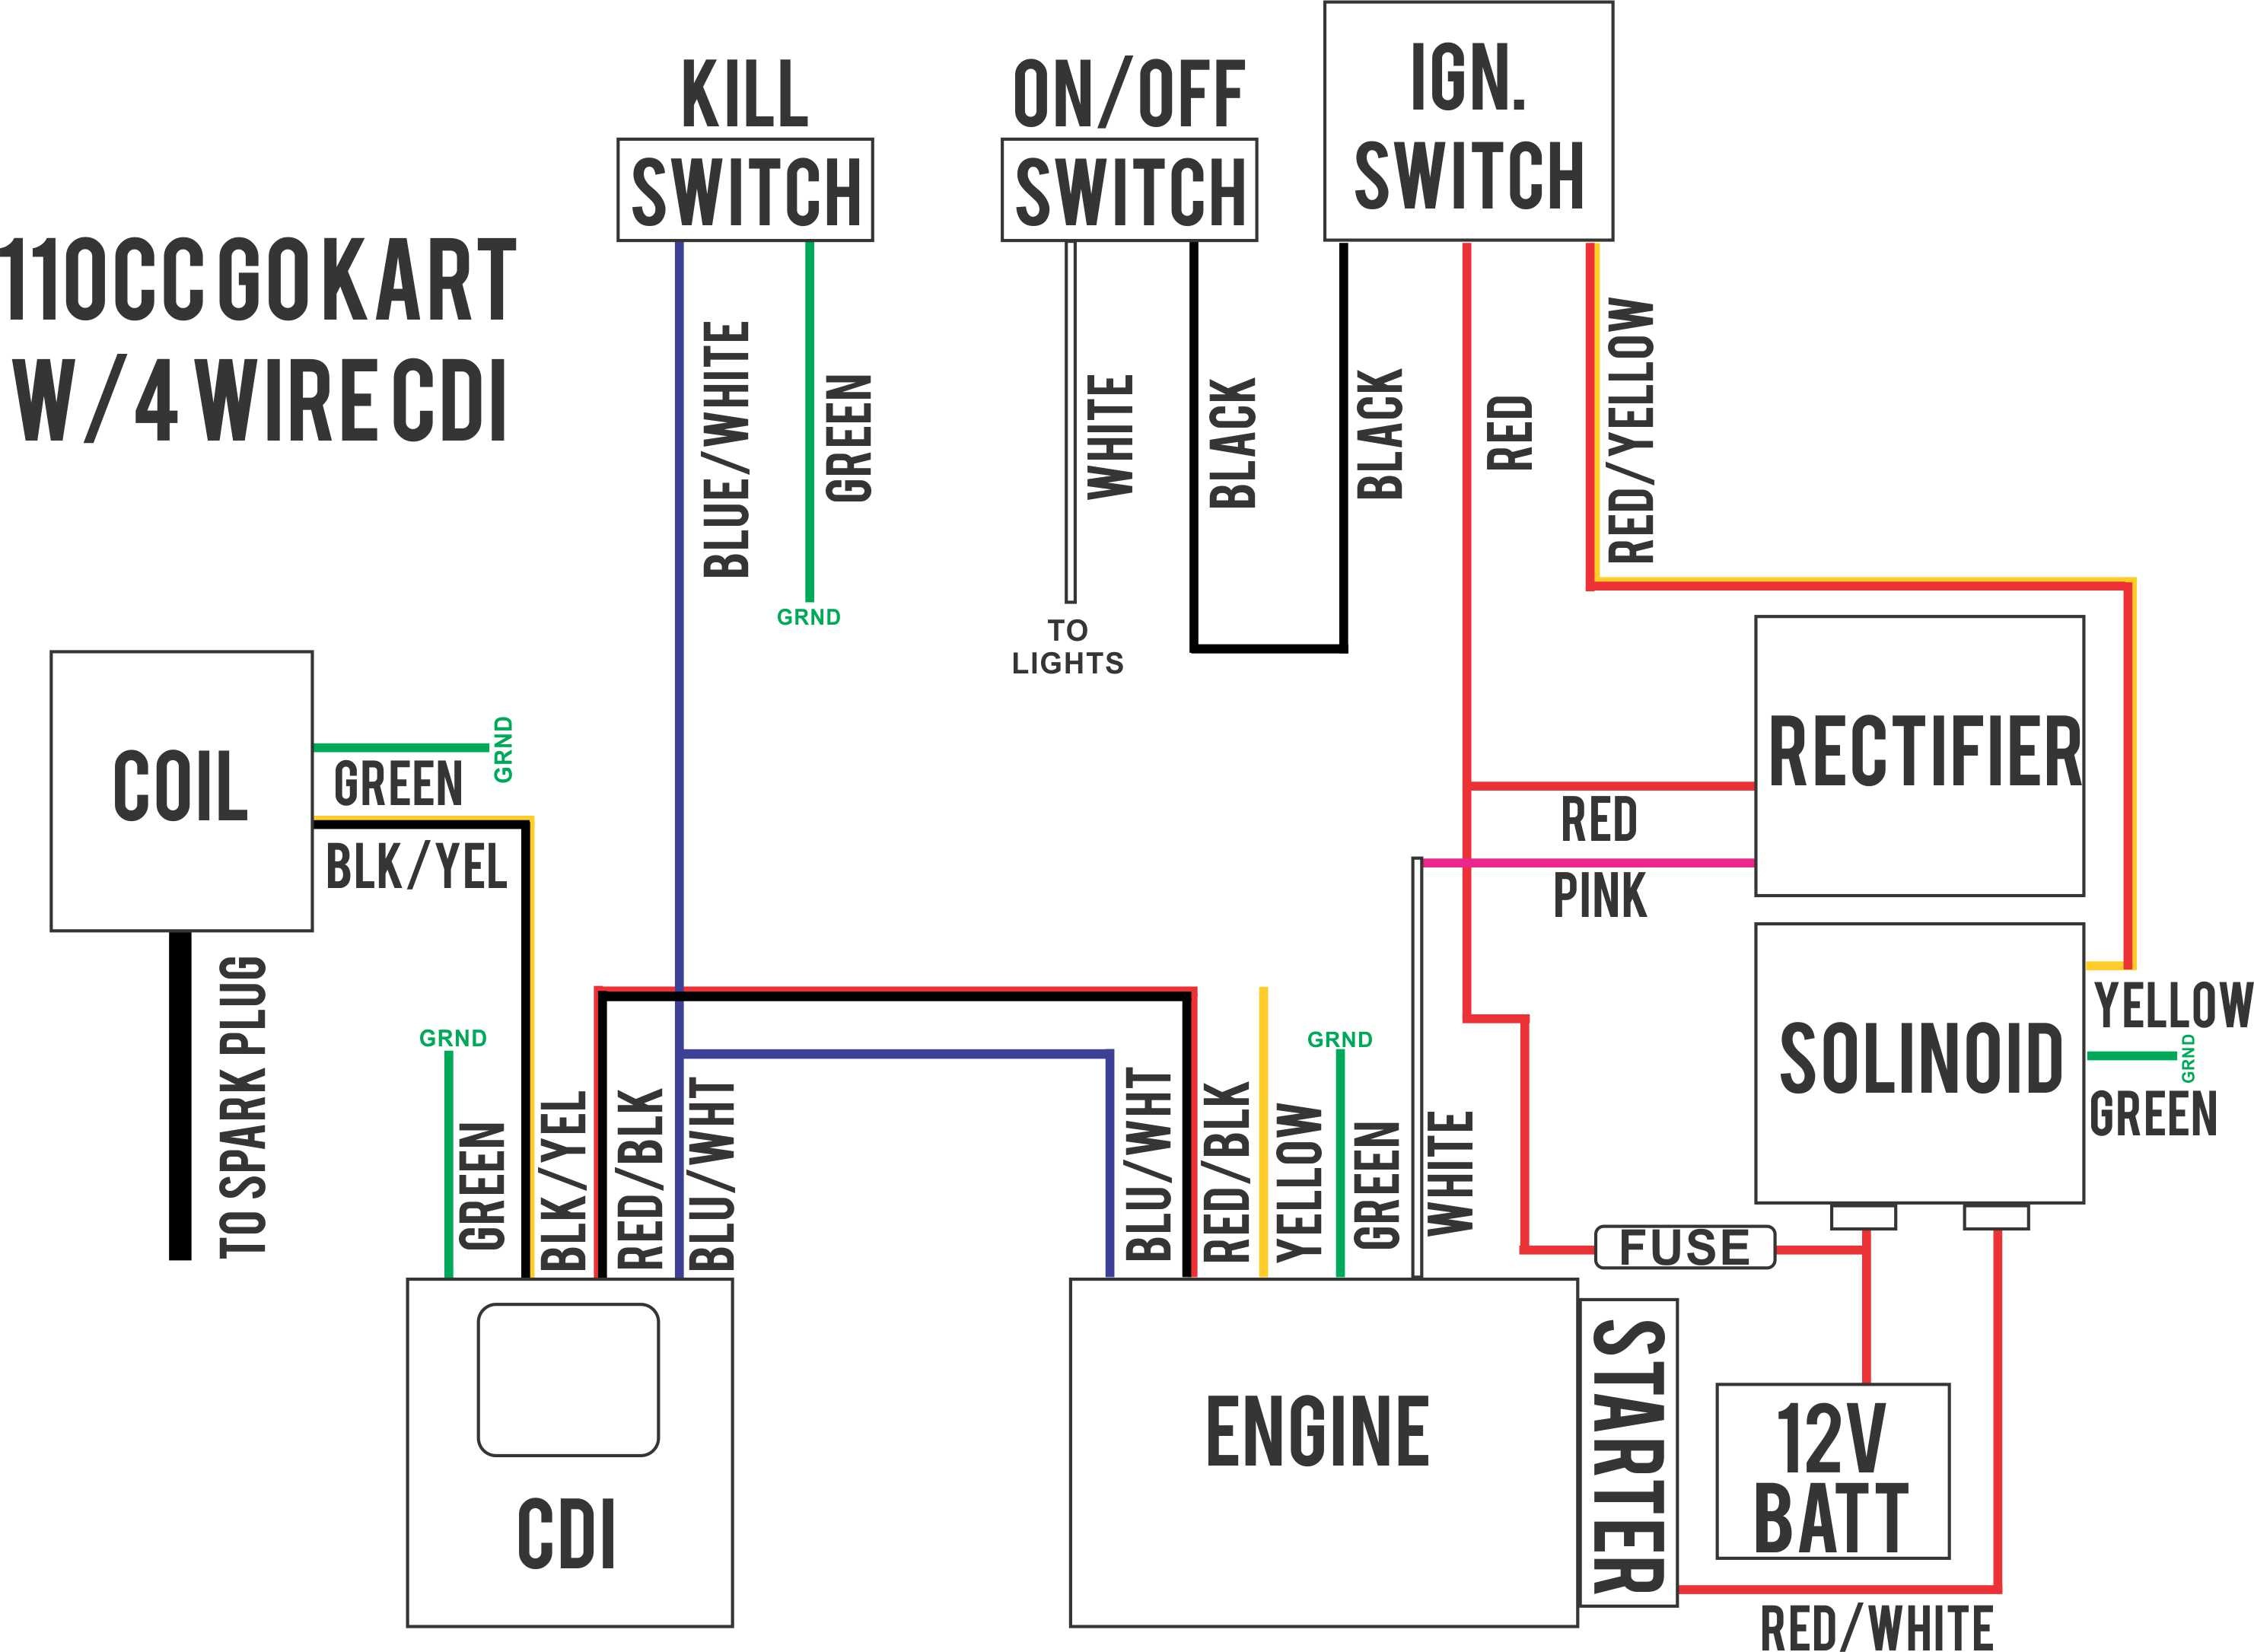 Jpeg 712kb Need A Diagram Of The Stereo Wireing In 2001 Chevy Tah 20 Watt Audio Amplifier Using Tda2005 Circuit Two Stroke Engine Get Free Image About Wiring Wire Rh Felgane Co